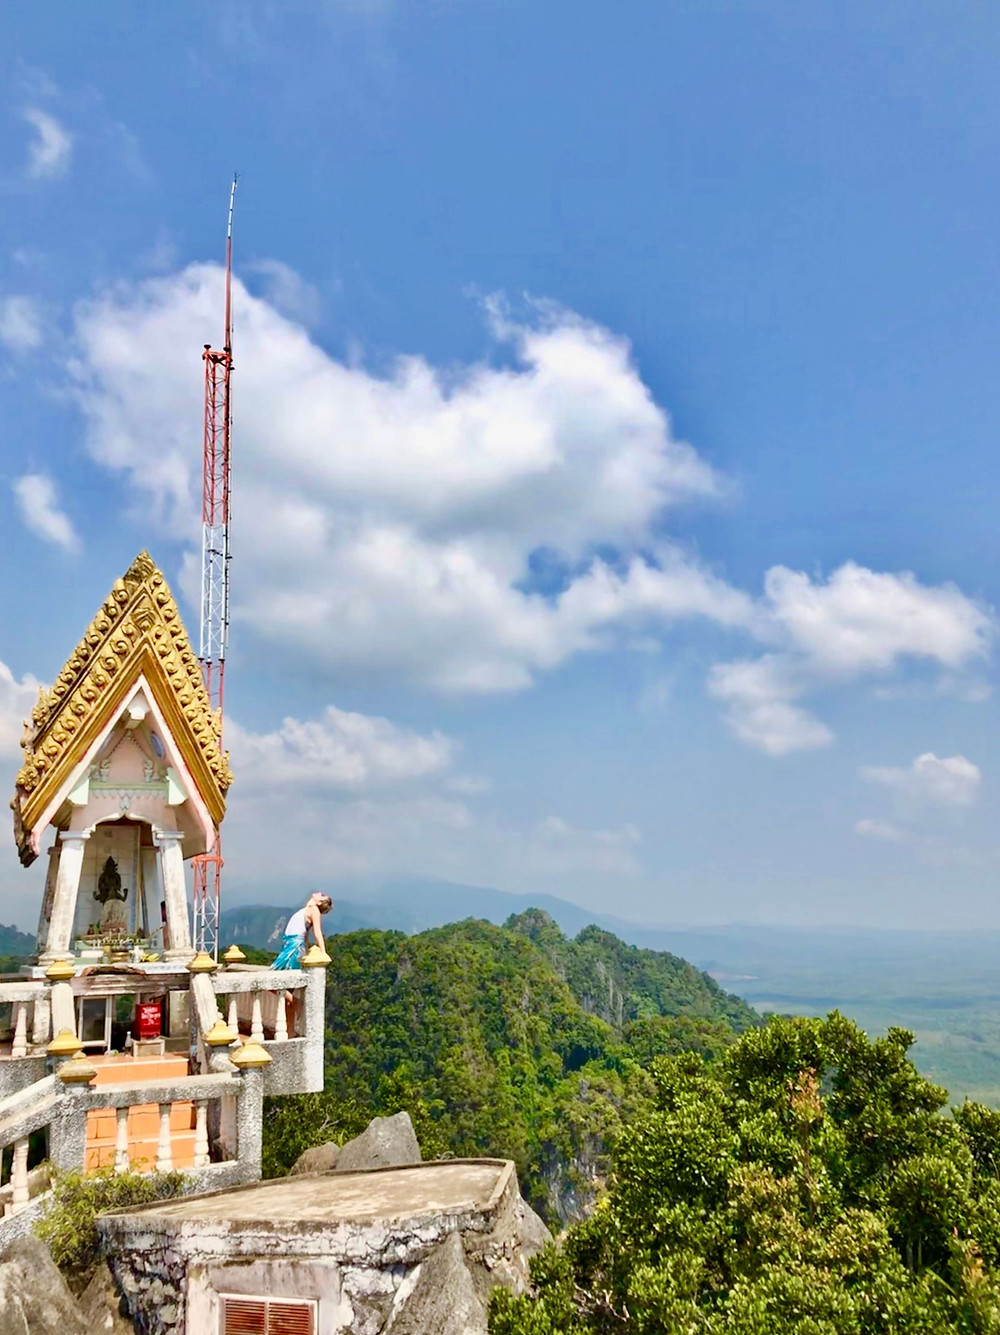 Tiger Cave Temple in Thailand with lush scenery